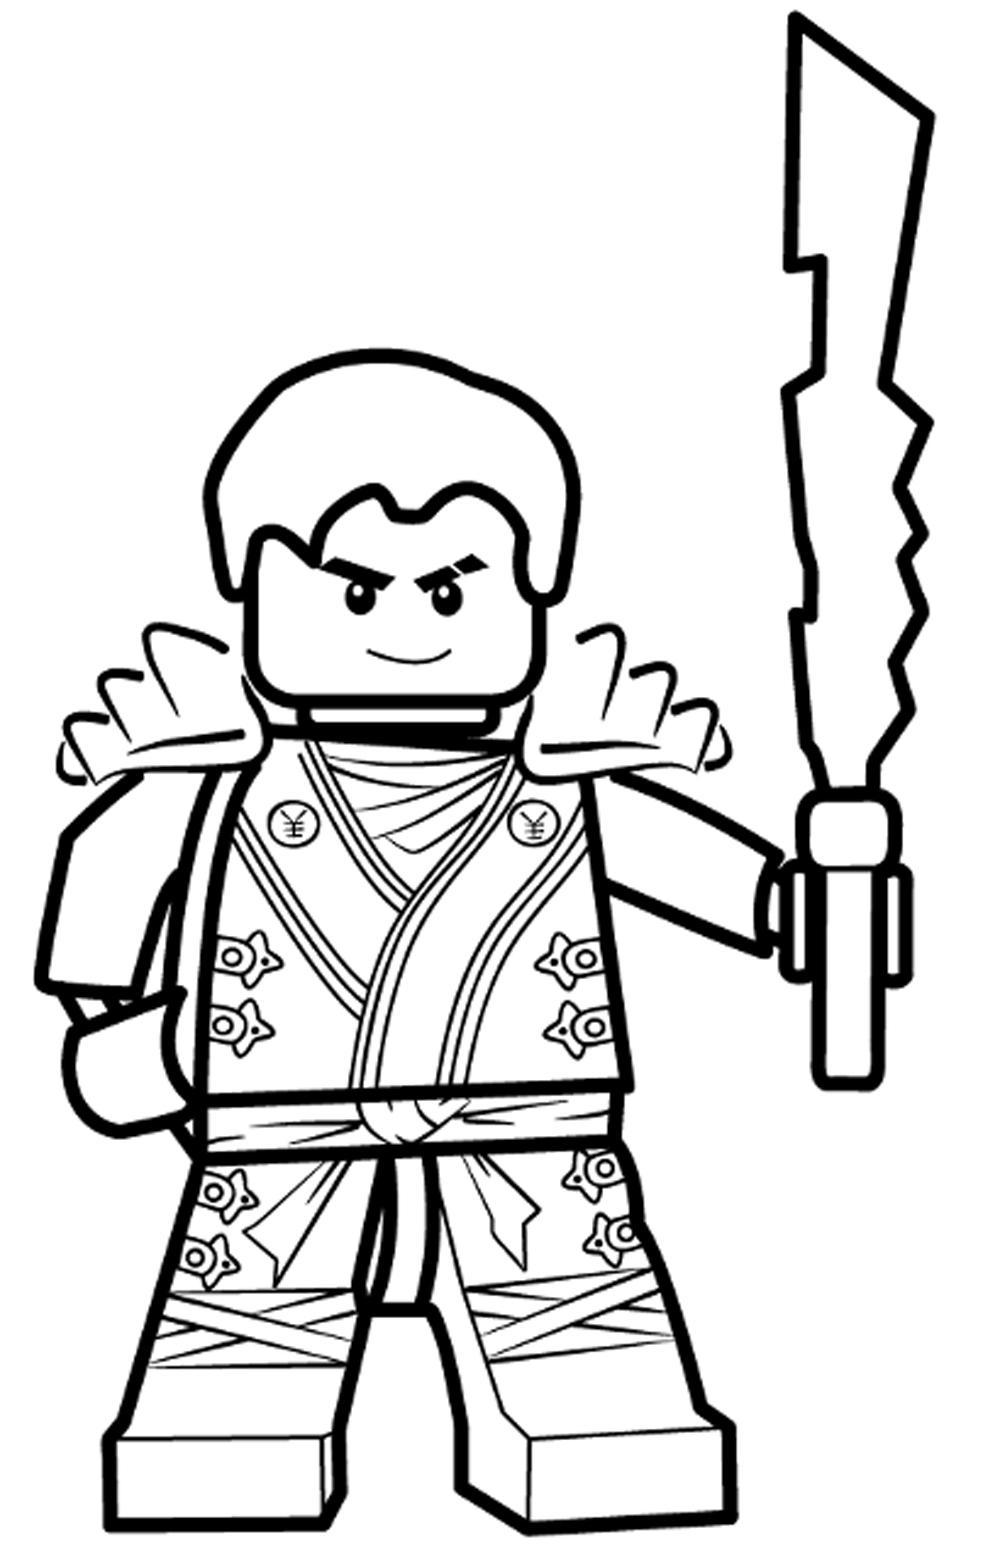 lego color sheet create your own lego coloring pages for kids sheet lego color